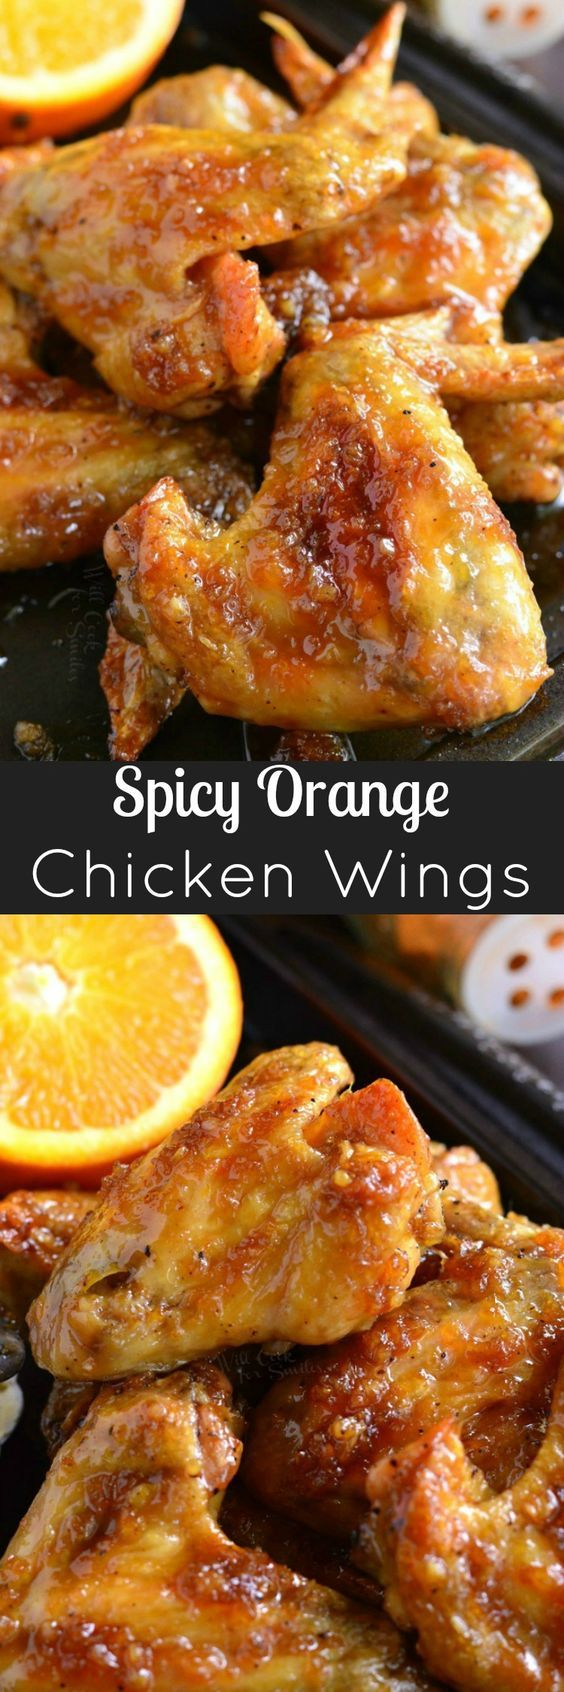 Spicy Orange Chicken Wings ~baked chicken wings slathered in an easy homemade spicy orange glaze will be a hit at any party!